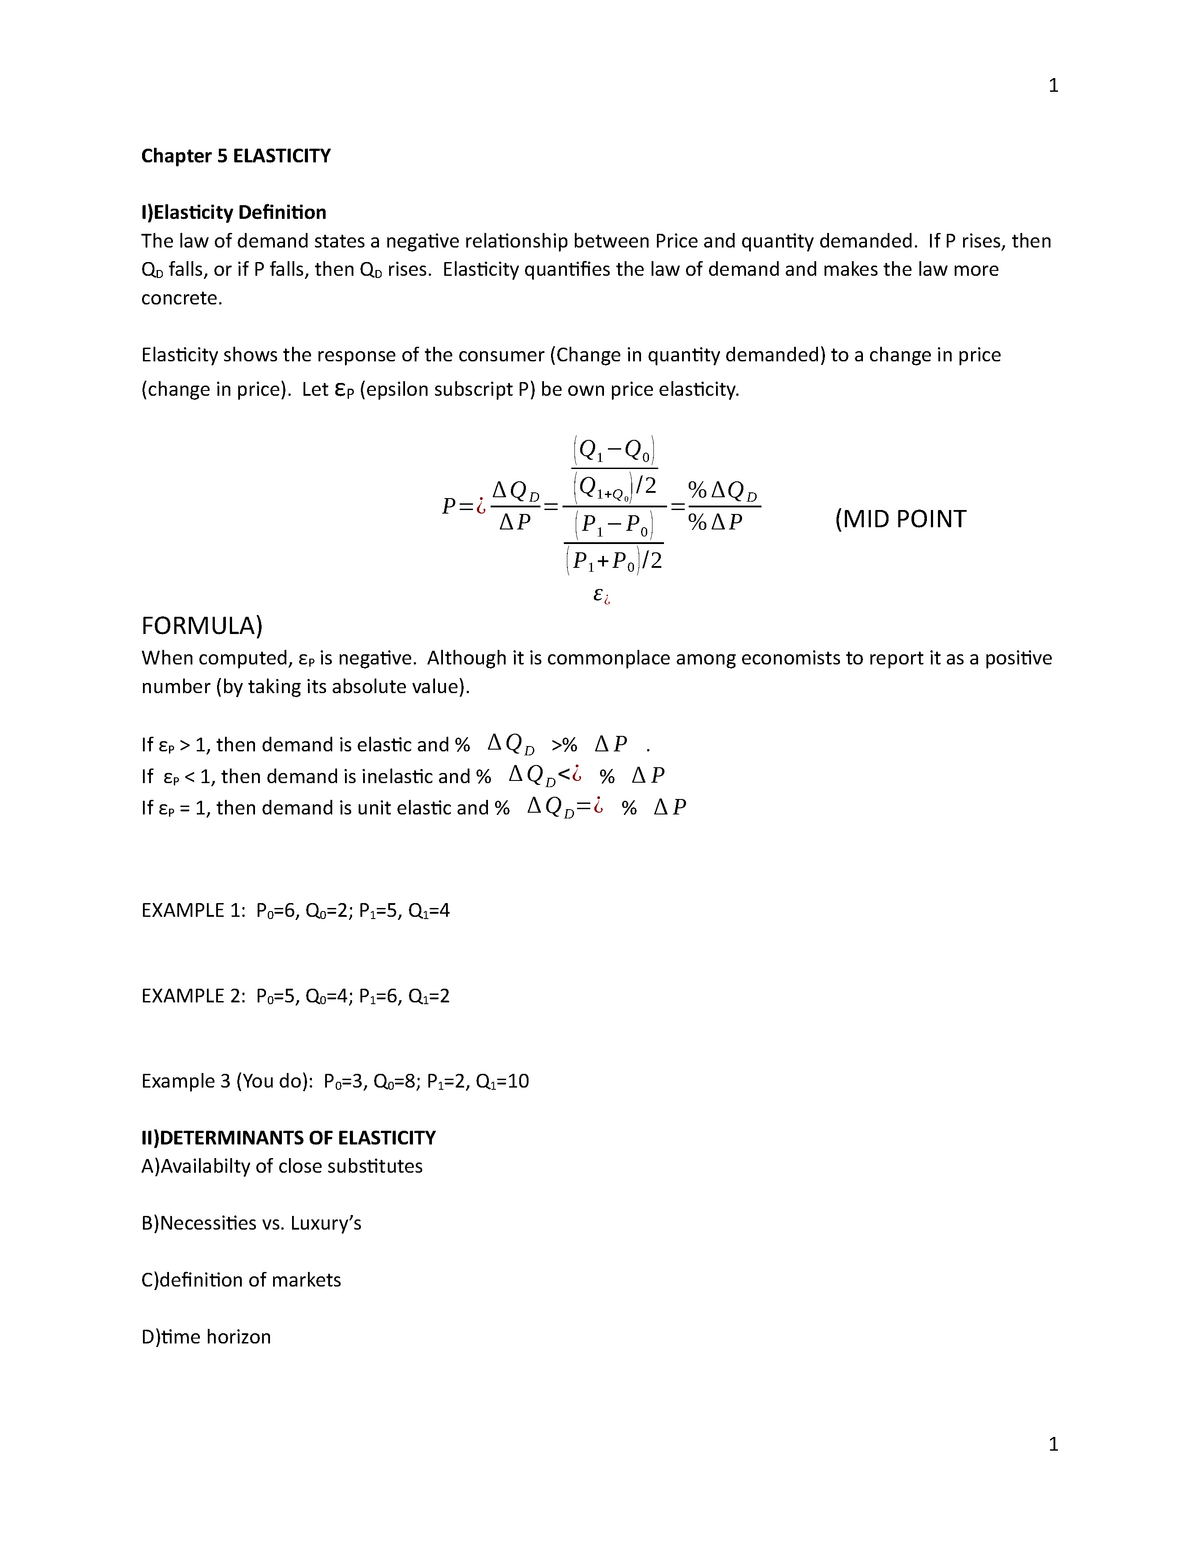 Chapter 5 Elasticity Lecture Notes 3 4 Econ201 Luc Studocu